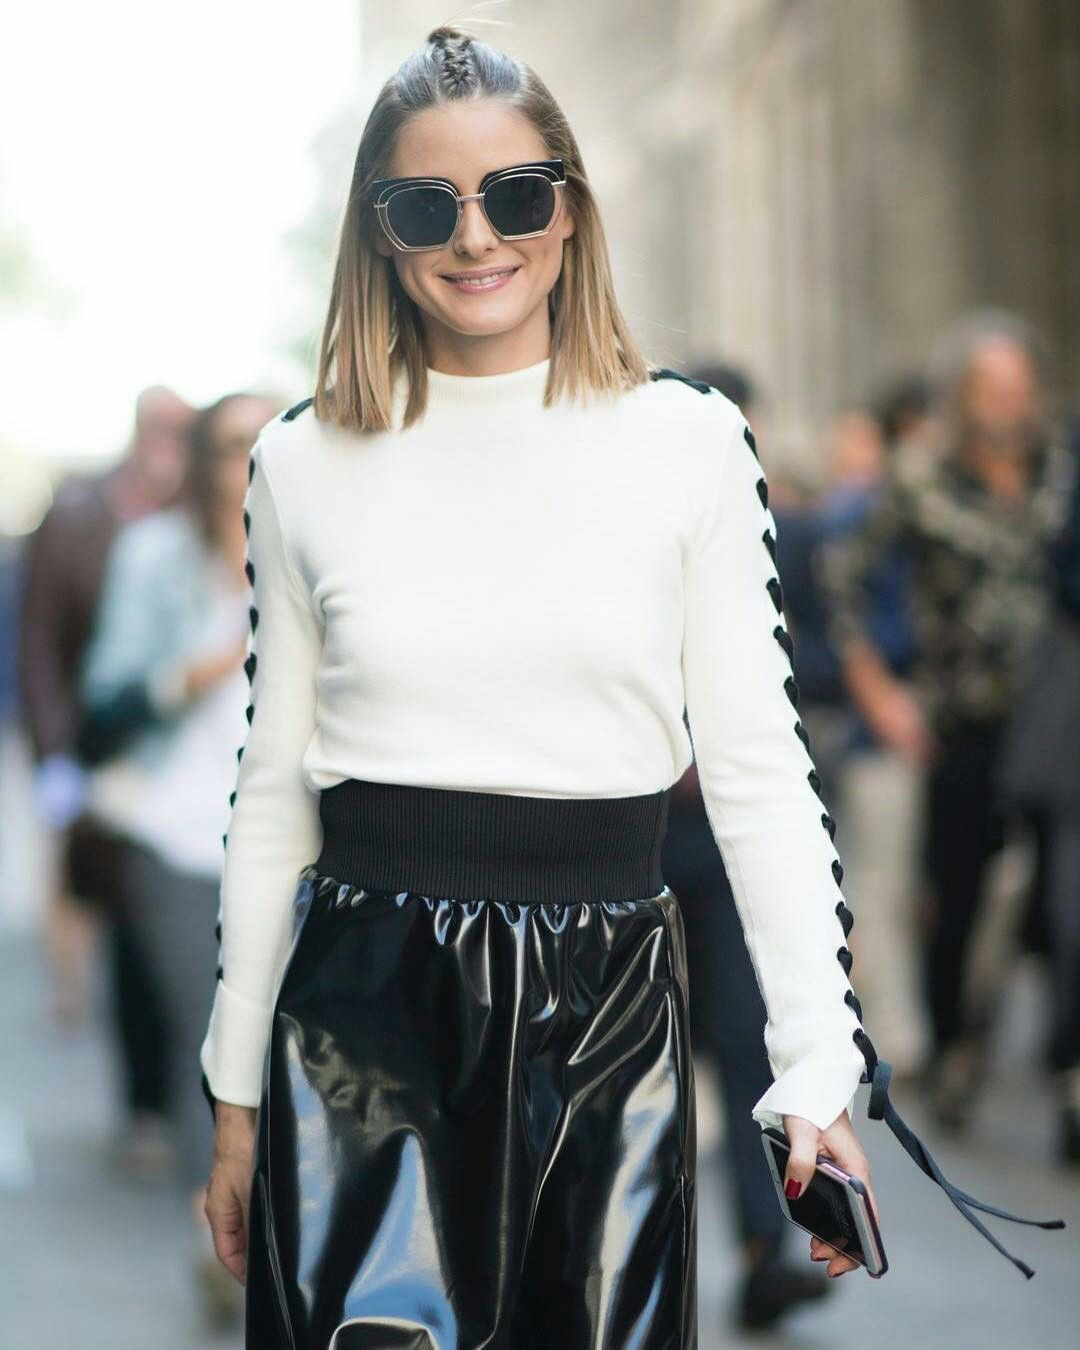 European Street Style, Olivia Palermo Style, Black White Fashion, Shirt  Transformation, Instagram 61308d54d2a7